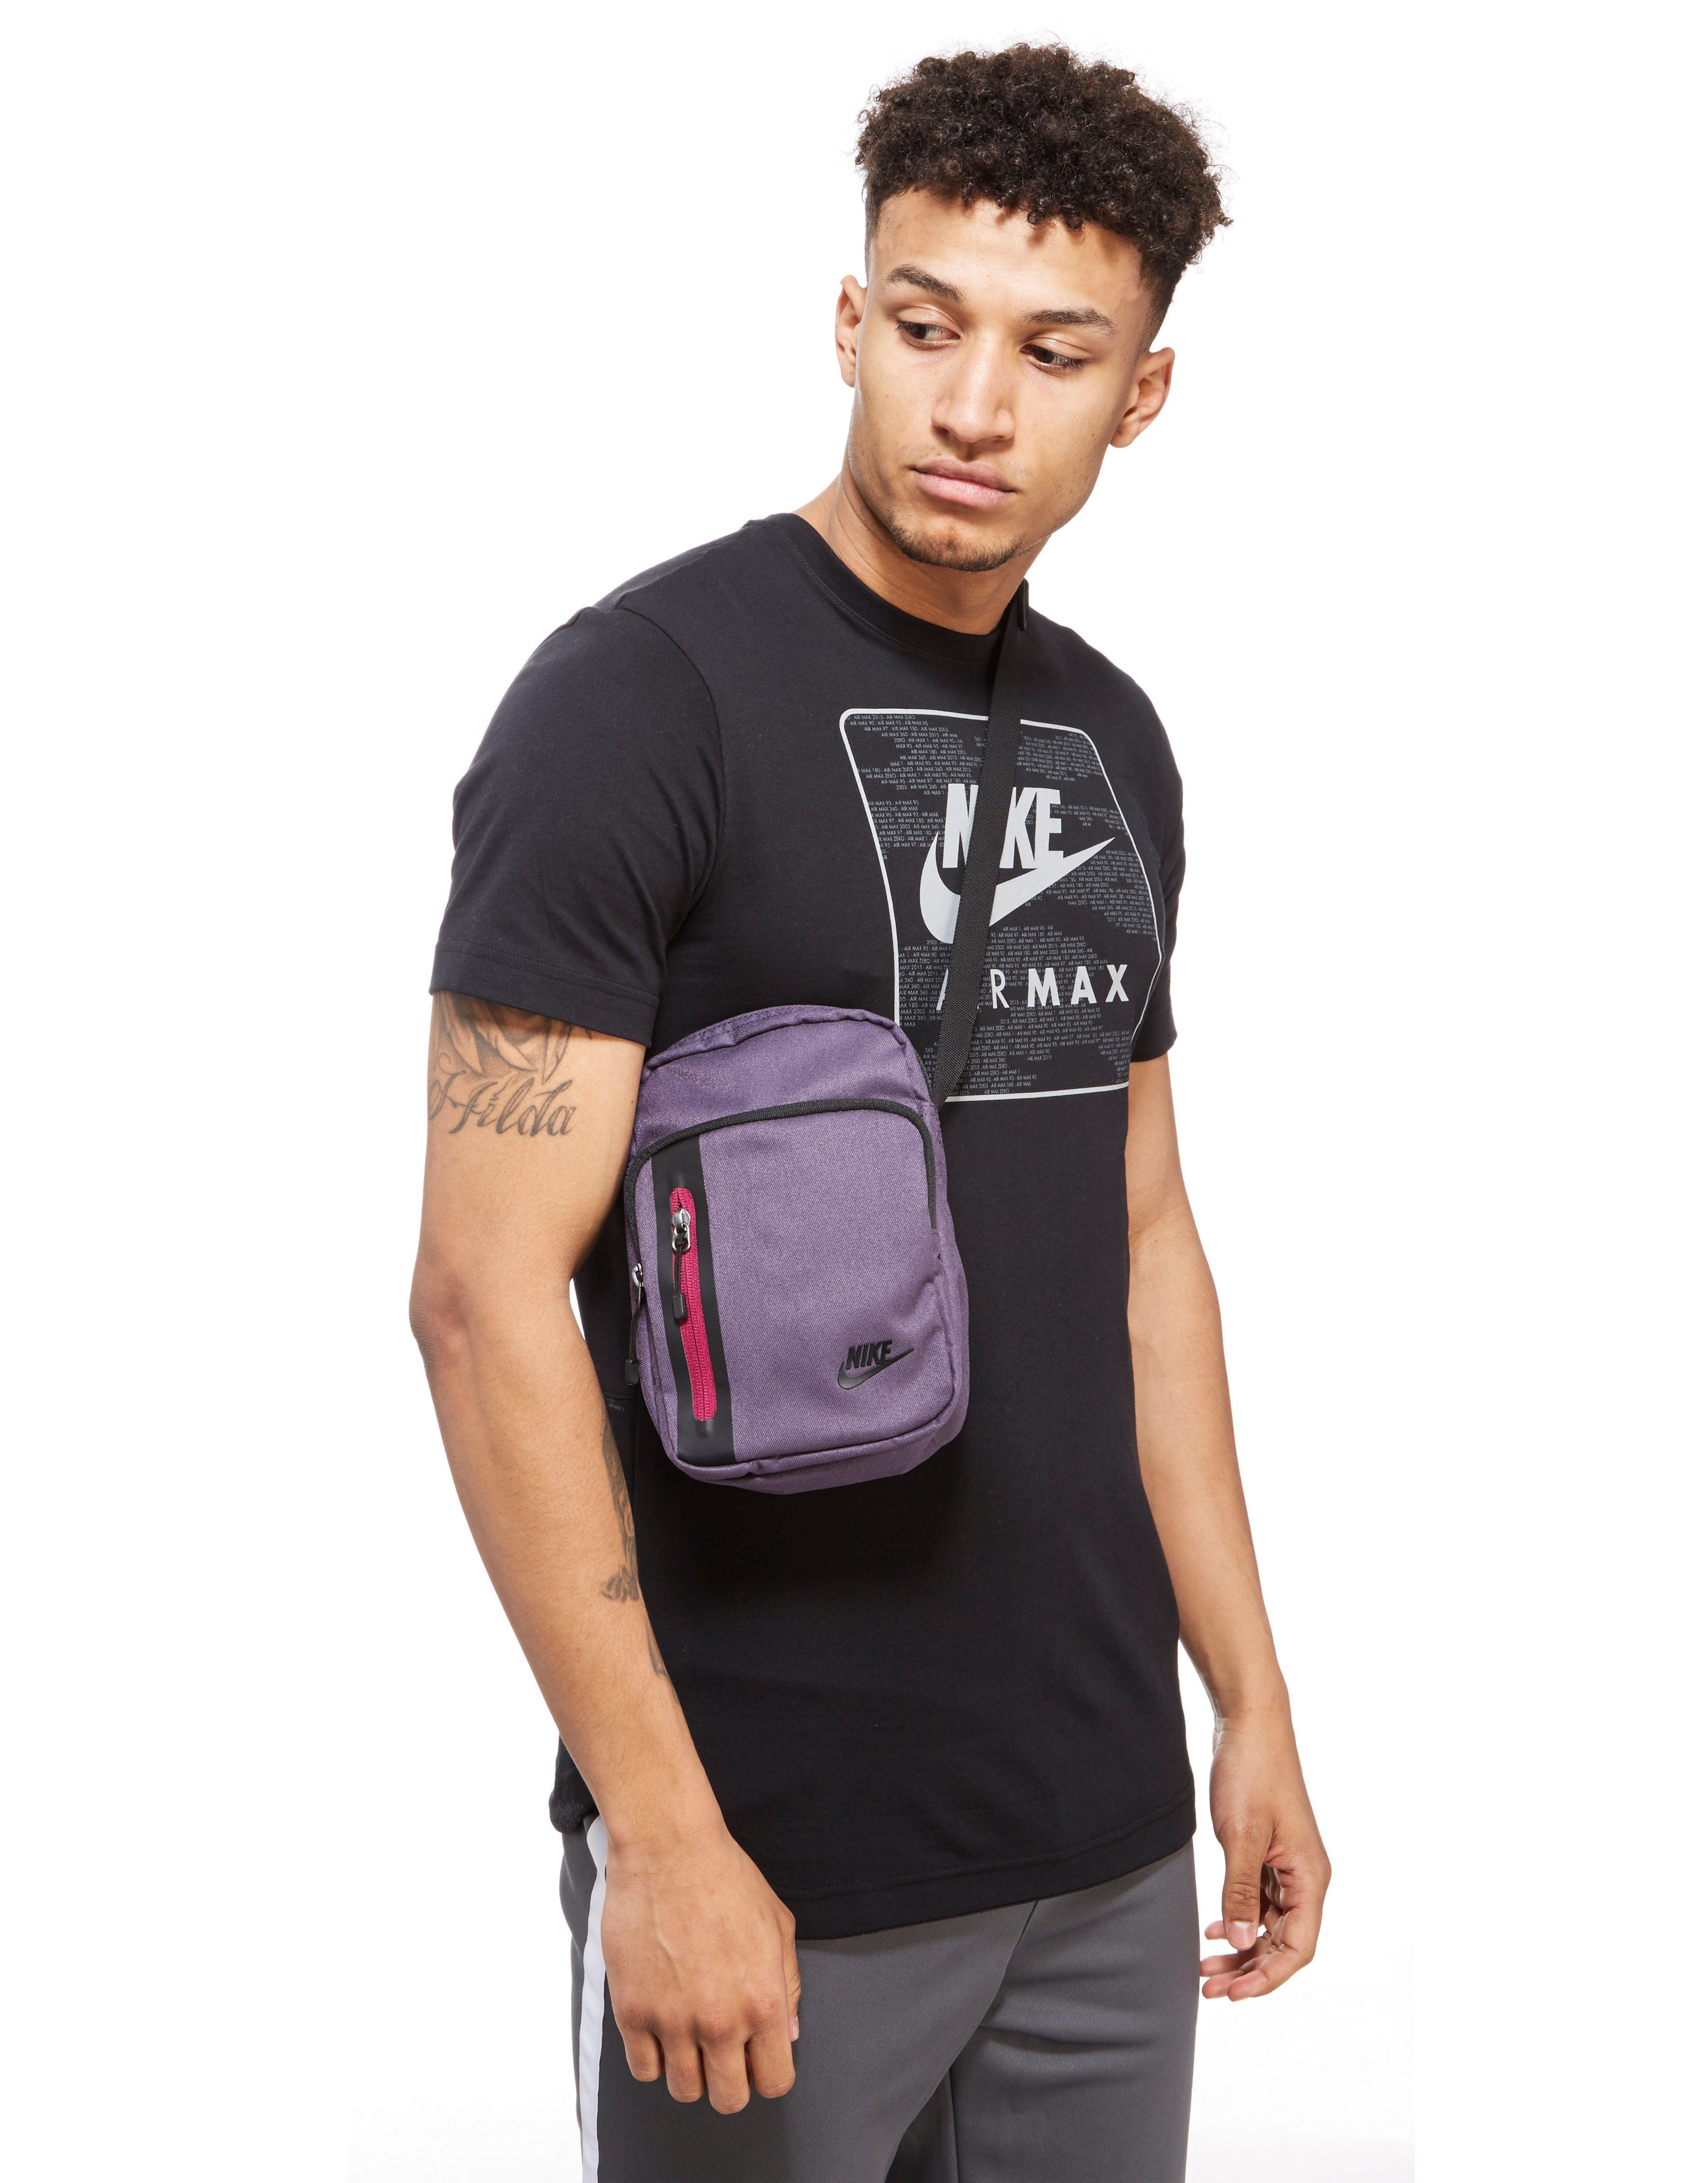 Lyst - Nike Core Small Items 3.0 Bag in Purple for Men 32ae3e833a81a